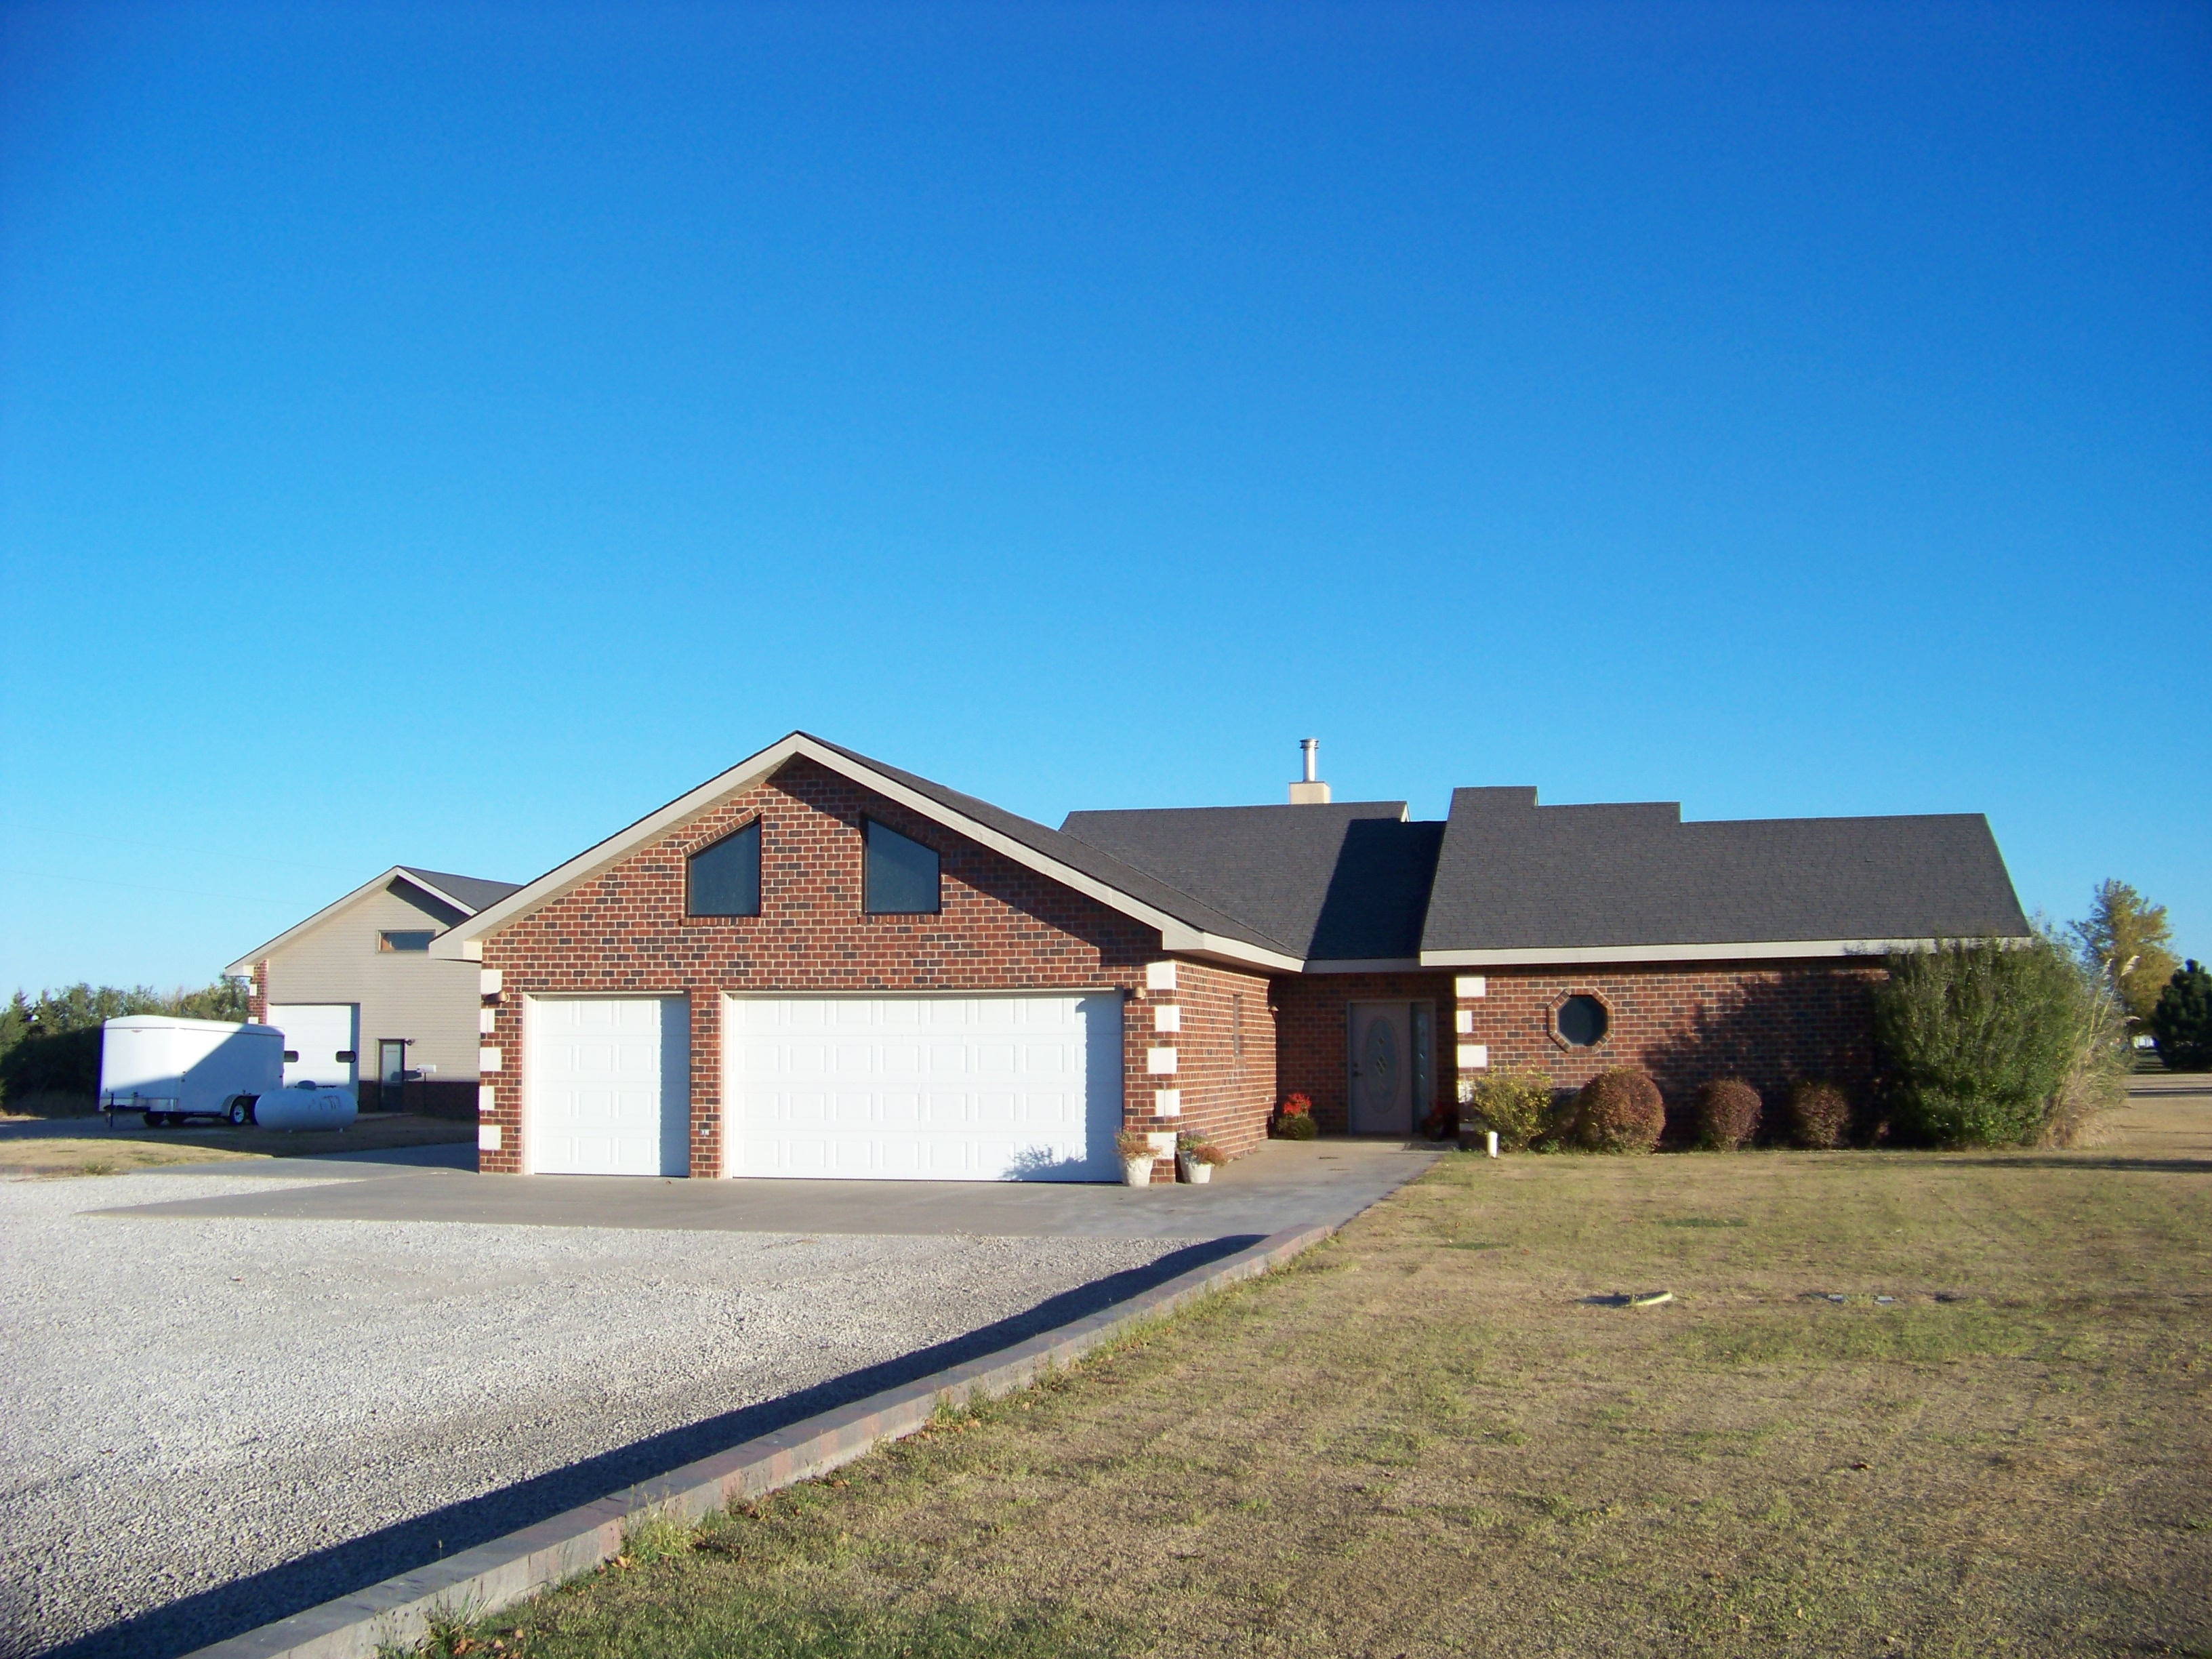 10595 Brenton Lane, Dodge City, Kansas 67801